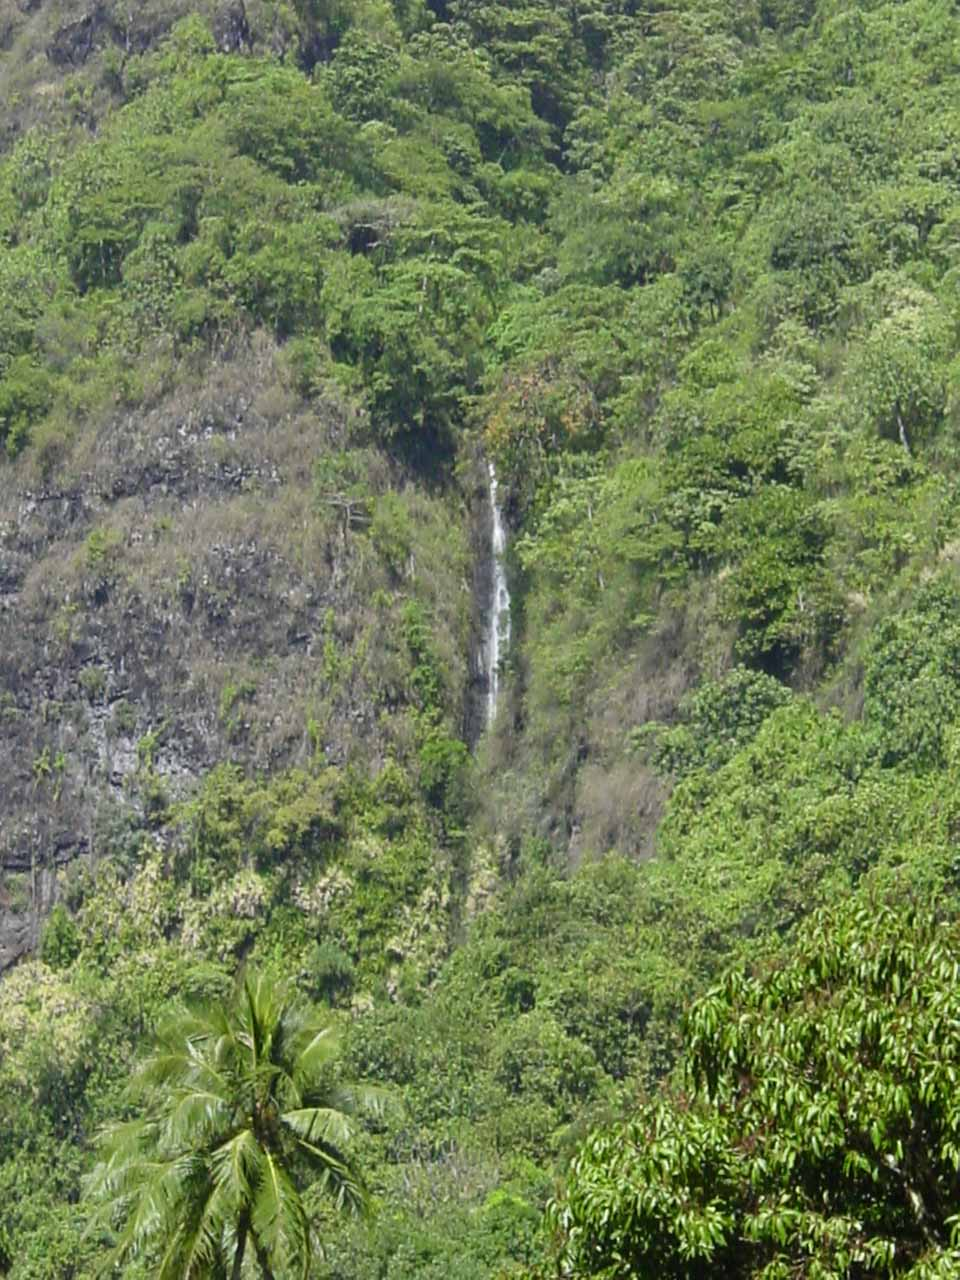 View of one of the Faarumai Waterfalls while walking the road